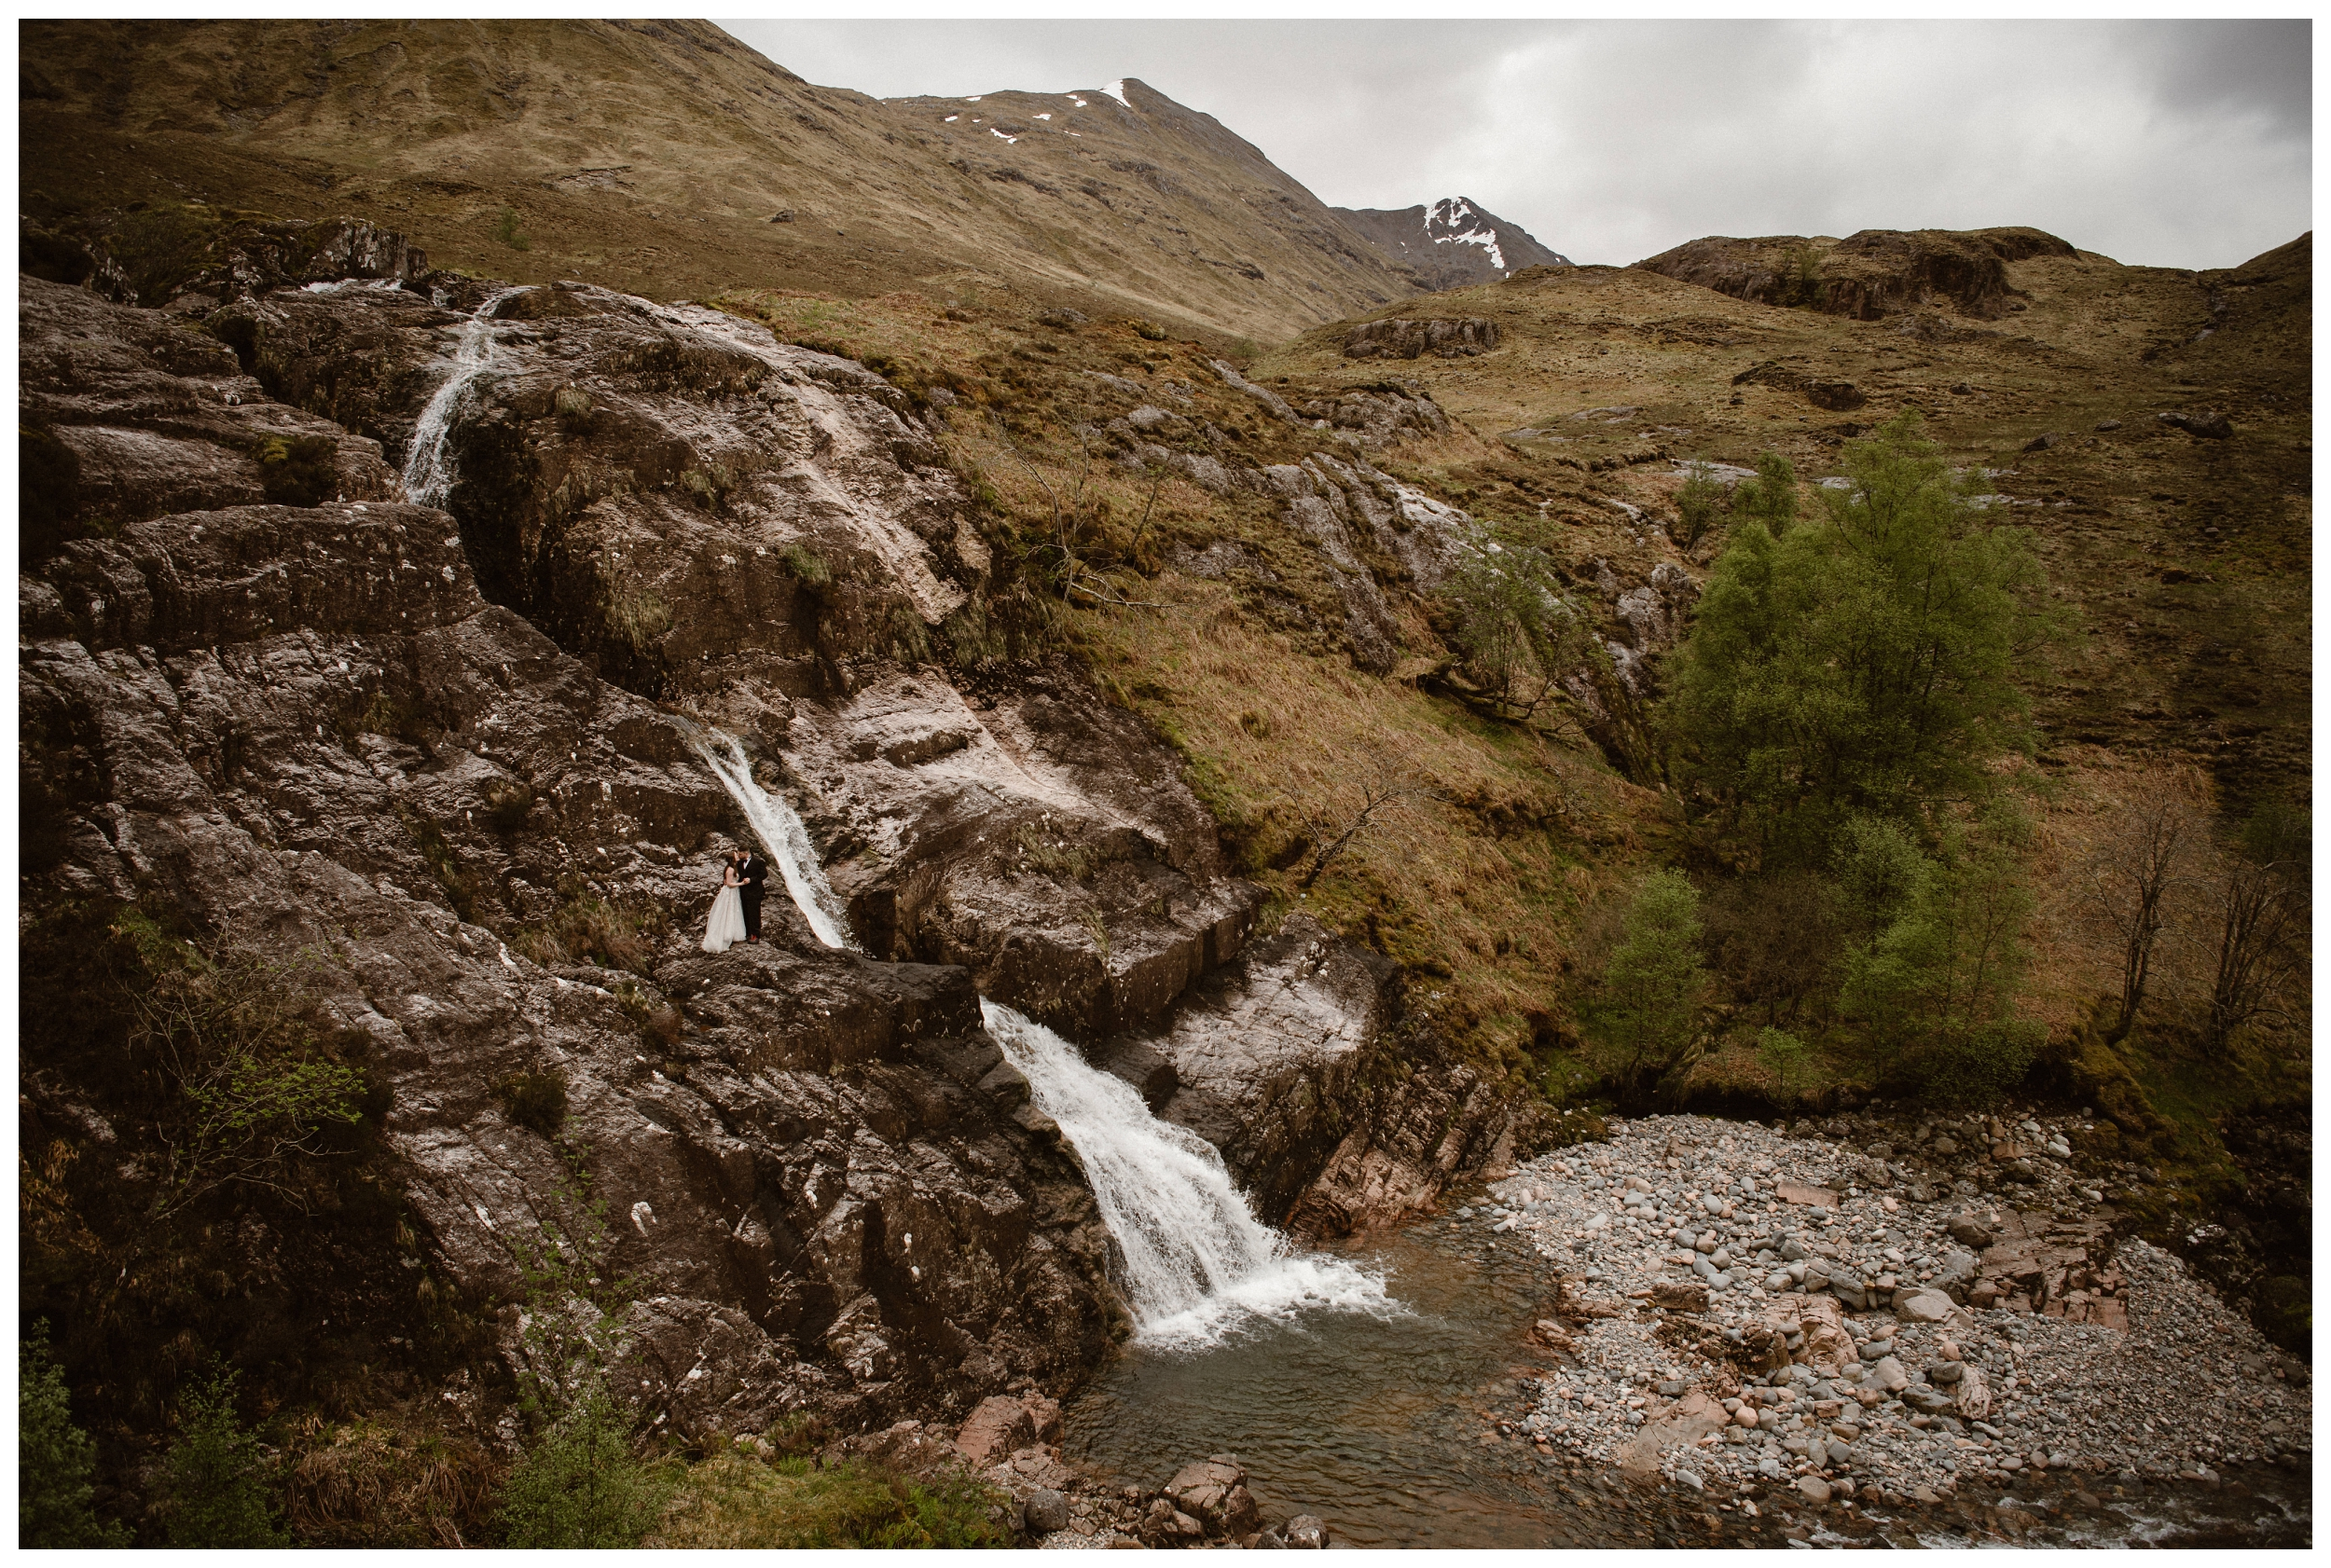 Elissa and Daniel are dwarfed by the rocky landscape of the Scottish Highland bogs and marshes outside Glencoe, Scotland following their self solemnizing elopement ceremony. Photo by Maddie Mae, Adventure Instead.